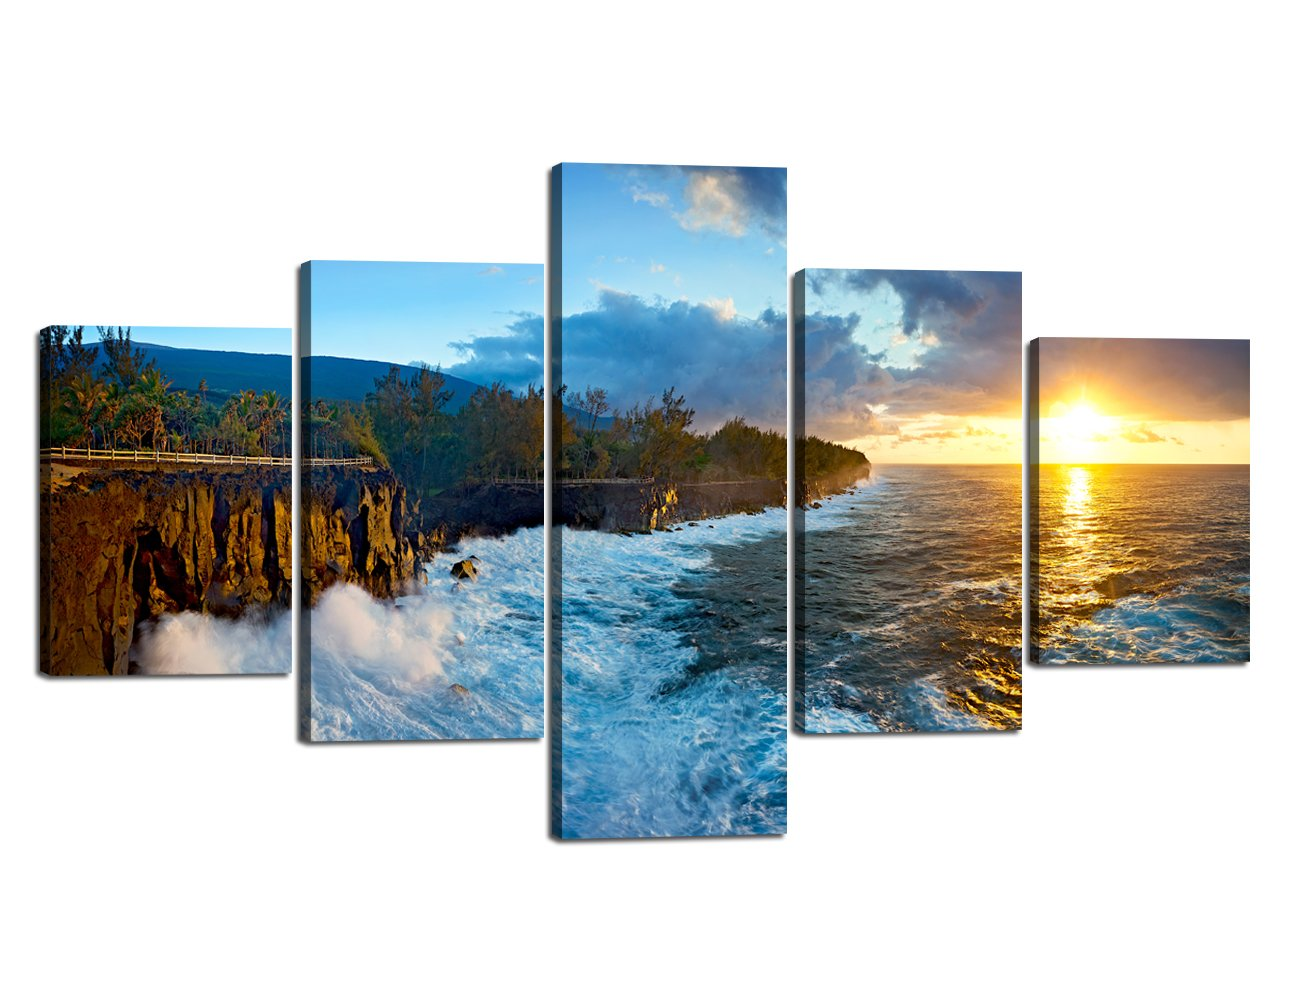 Ocean_17 Large Size Scene of Sea Waves Palm Tree Landscape Picture Modern Painting on Canvas 5 Piece Framed Wall Art for Living Room Bedroom Kitchen Home Decor Stretched Gallery Canvas Wrap Giclee Print (60''W x 32''H)